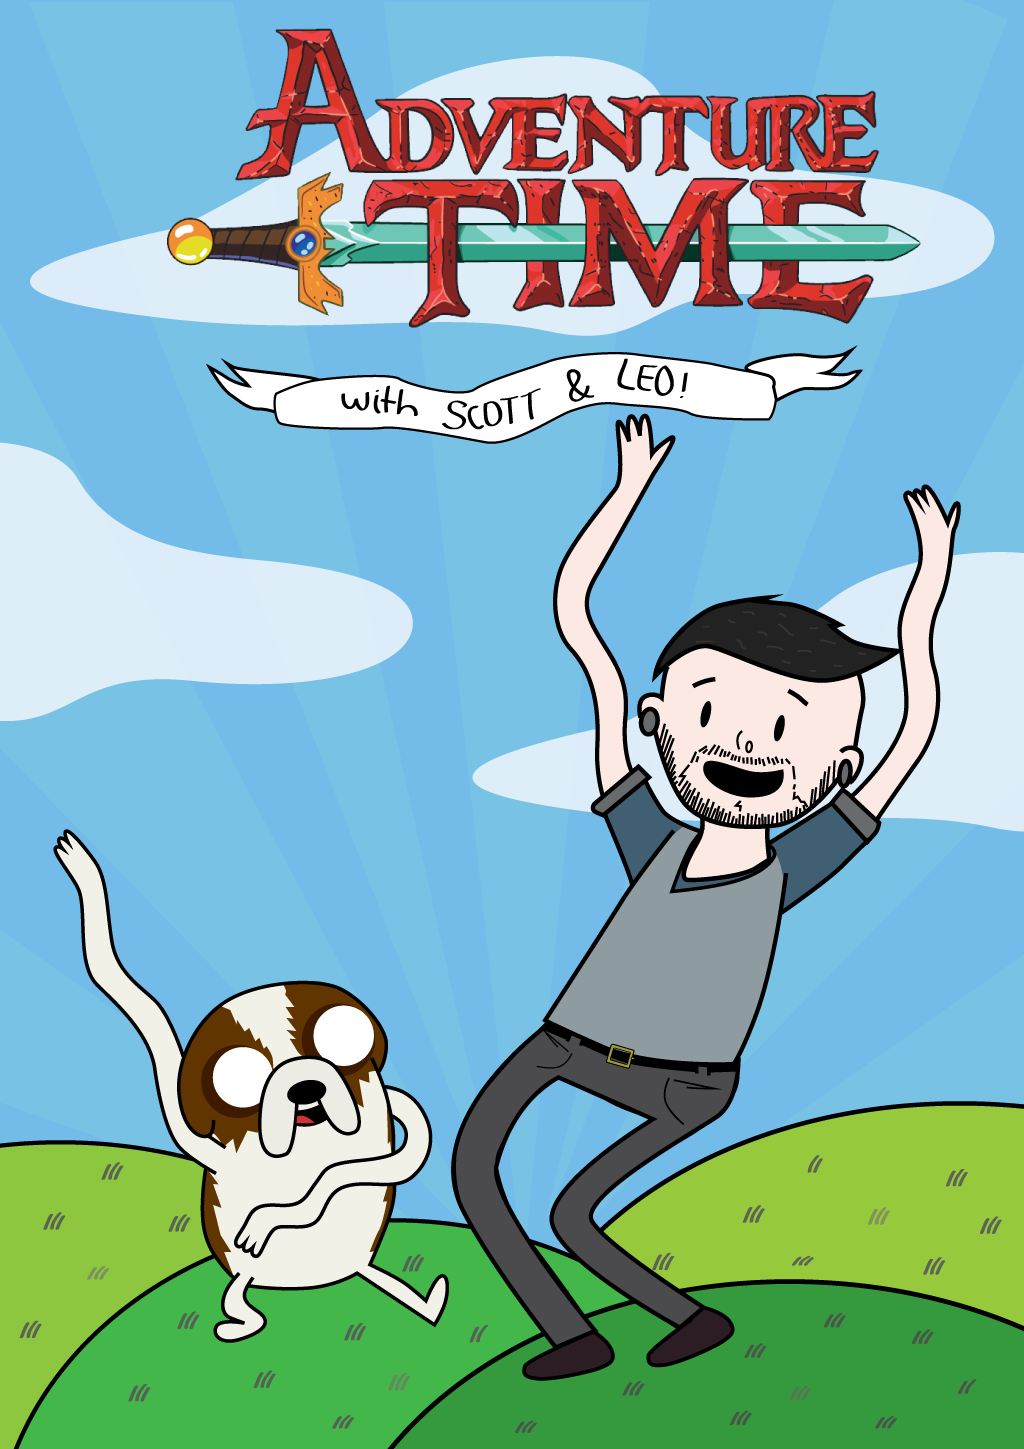 Adventure Time with Scott and Leo